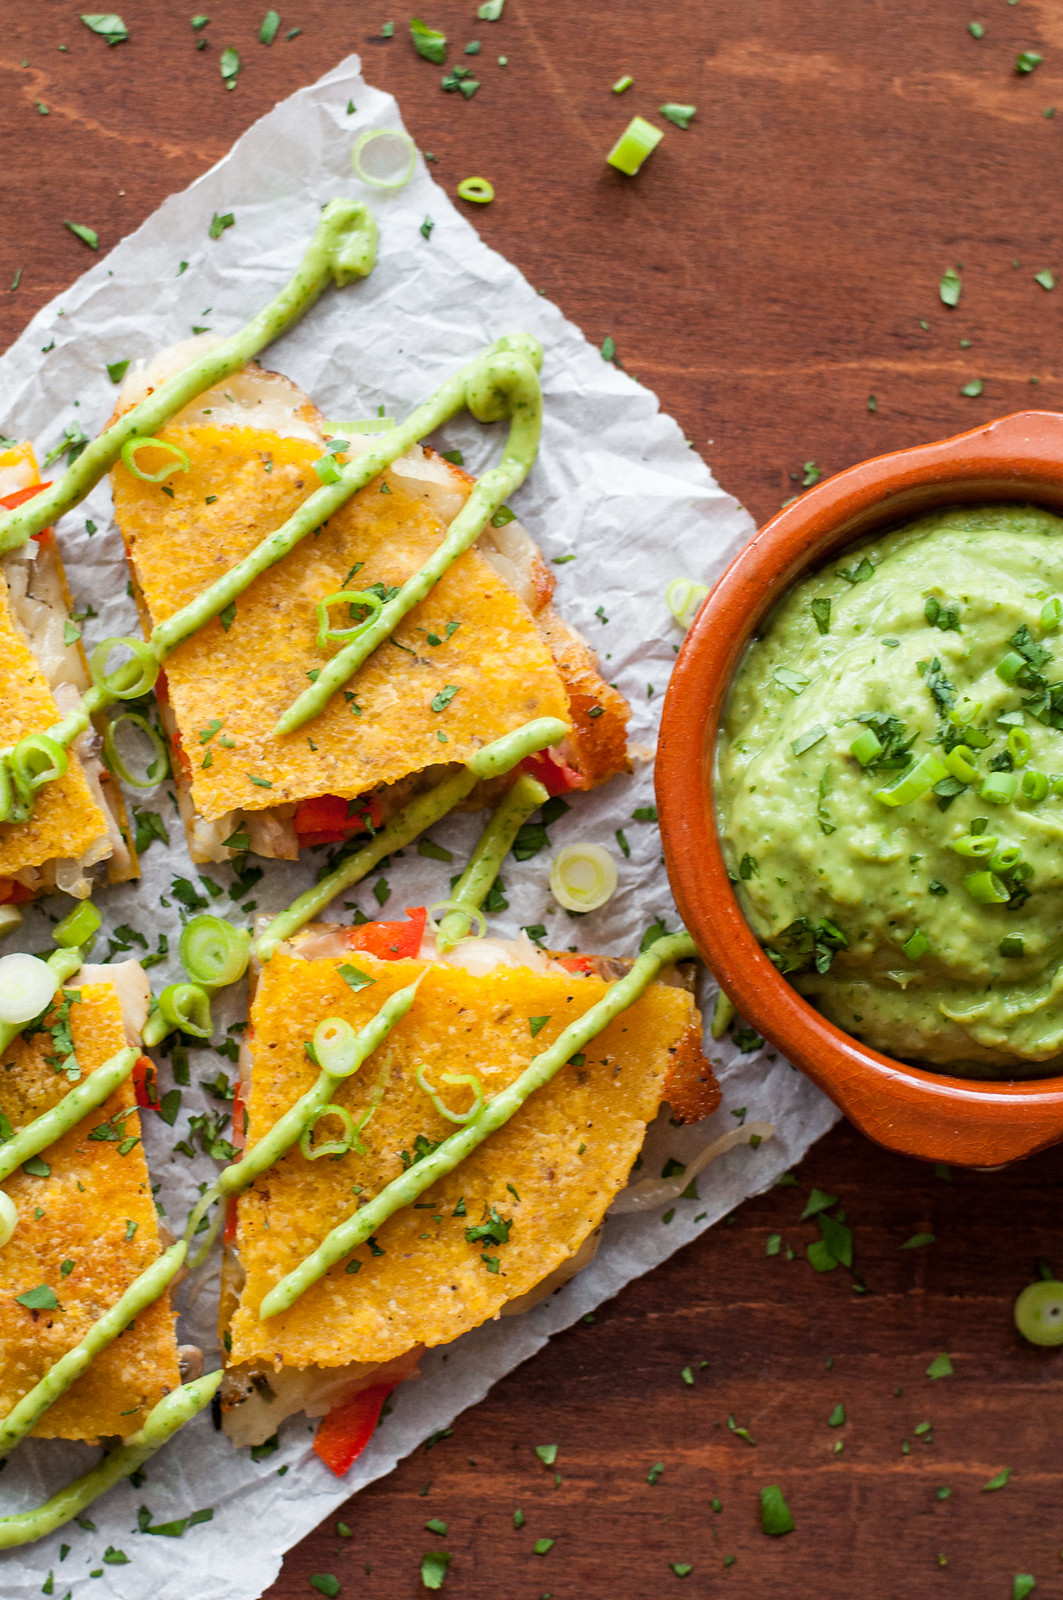 Meatless steakhouse quesadillas and tangy avocado dip | recipe at Natural Comfort Kitchen | #meatless #glutenfree